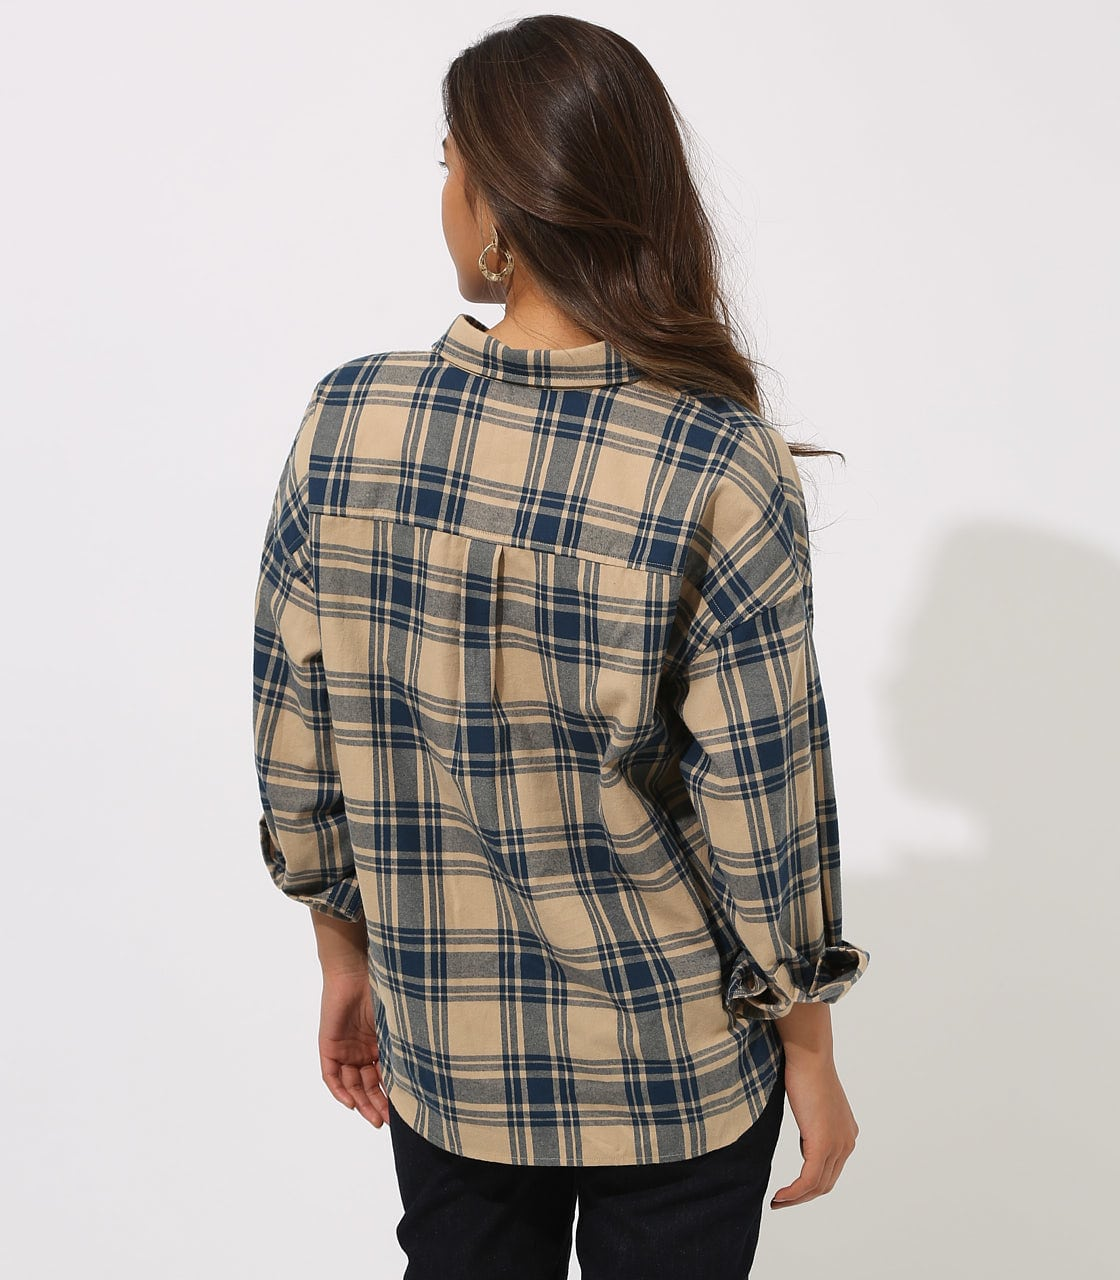 CHECK DROP SHOULDER SHIRT 詳細画像 柄BEG 7